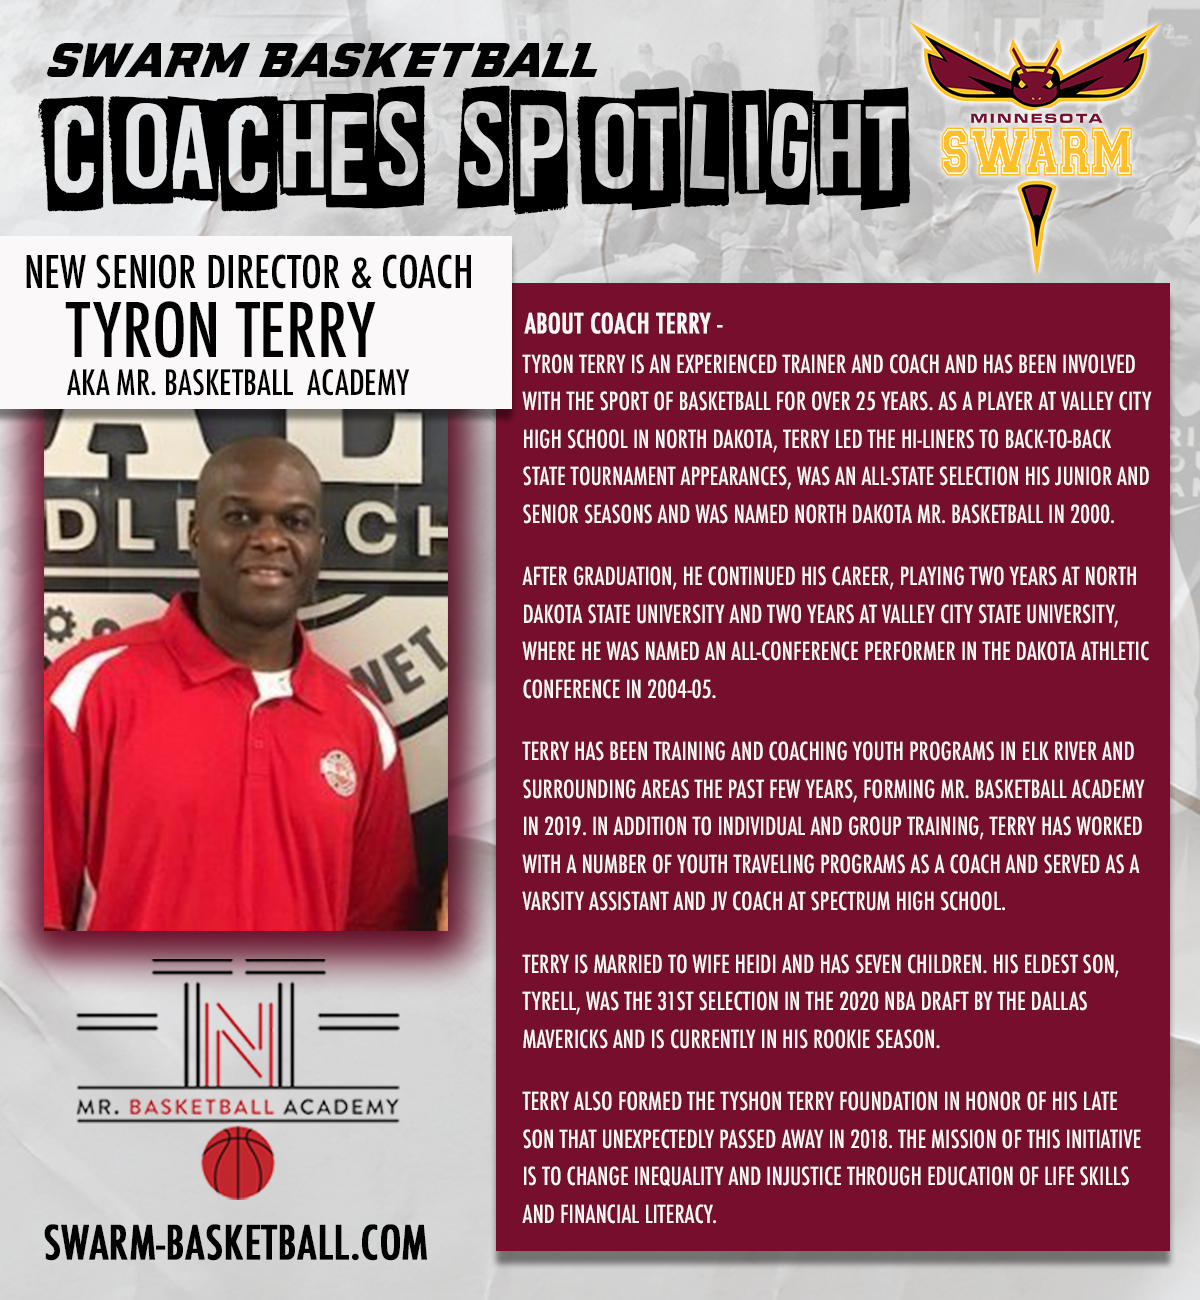 TryonTerryCoachesSpotlight